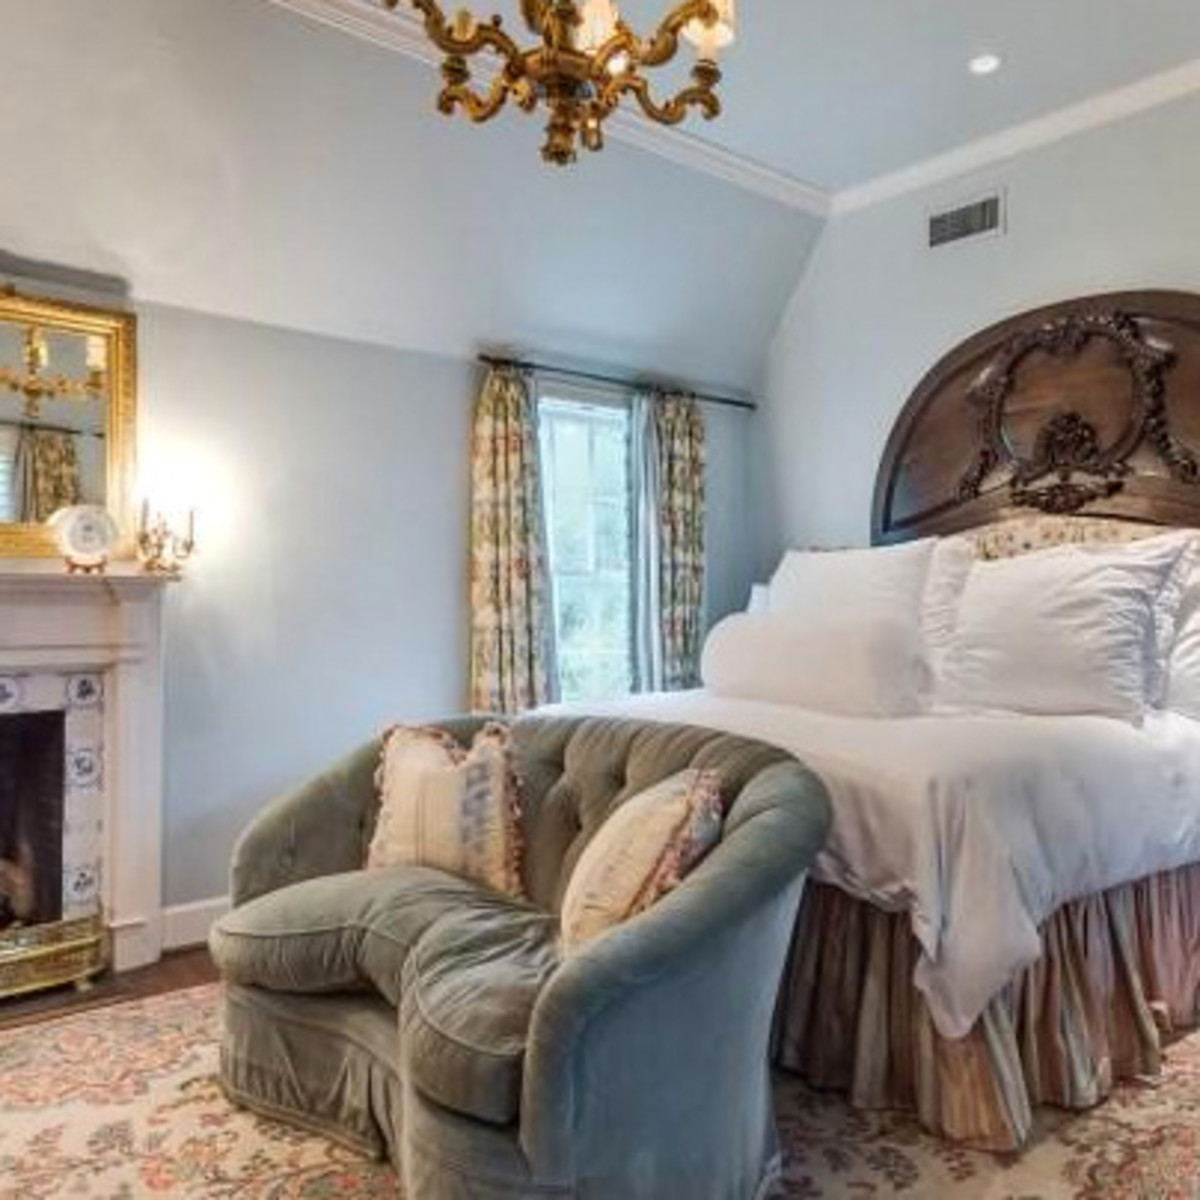 Houston, real estate, August 2017, George R. Brown's River Oaks Mansion, 3363 Inwood Dr, bedroom